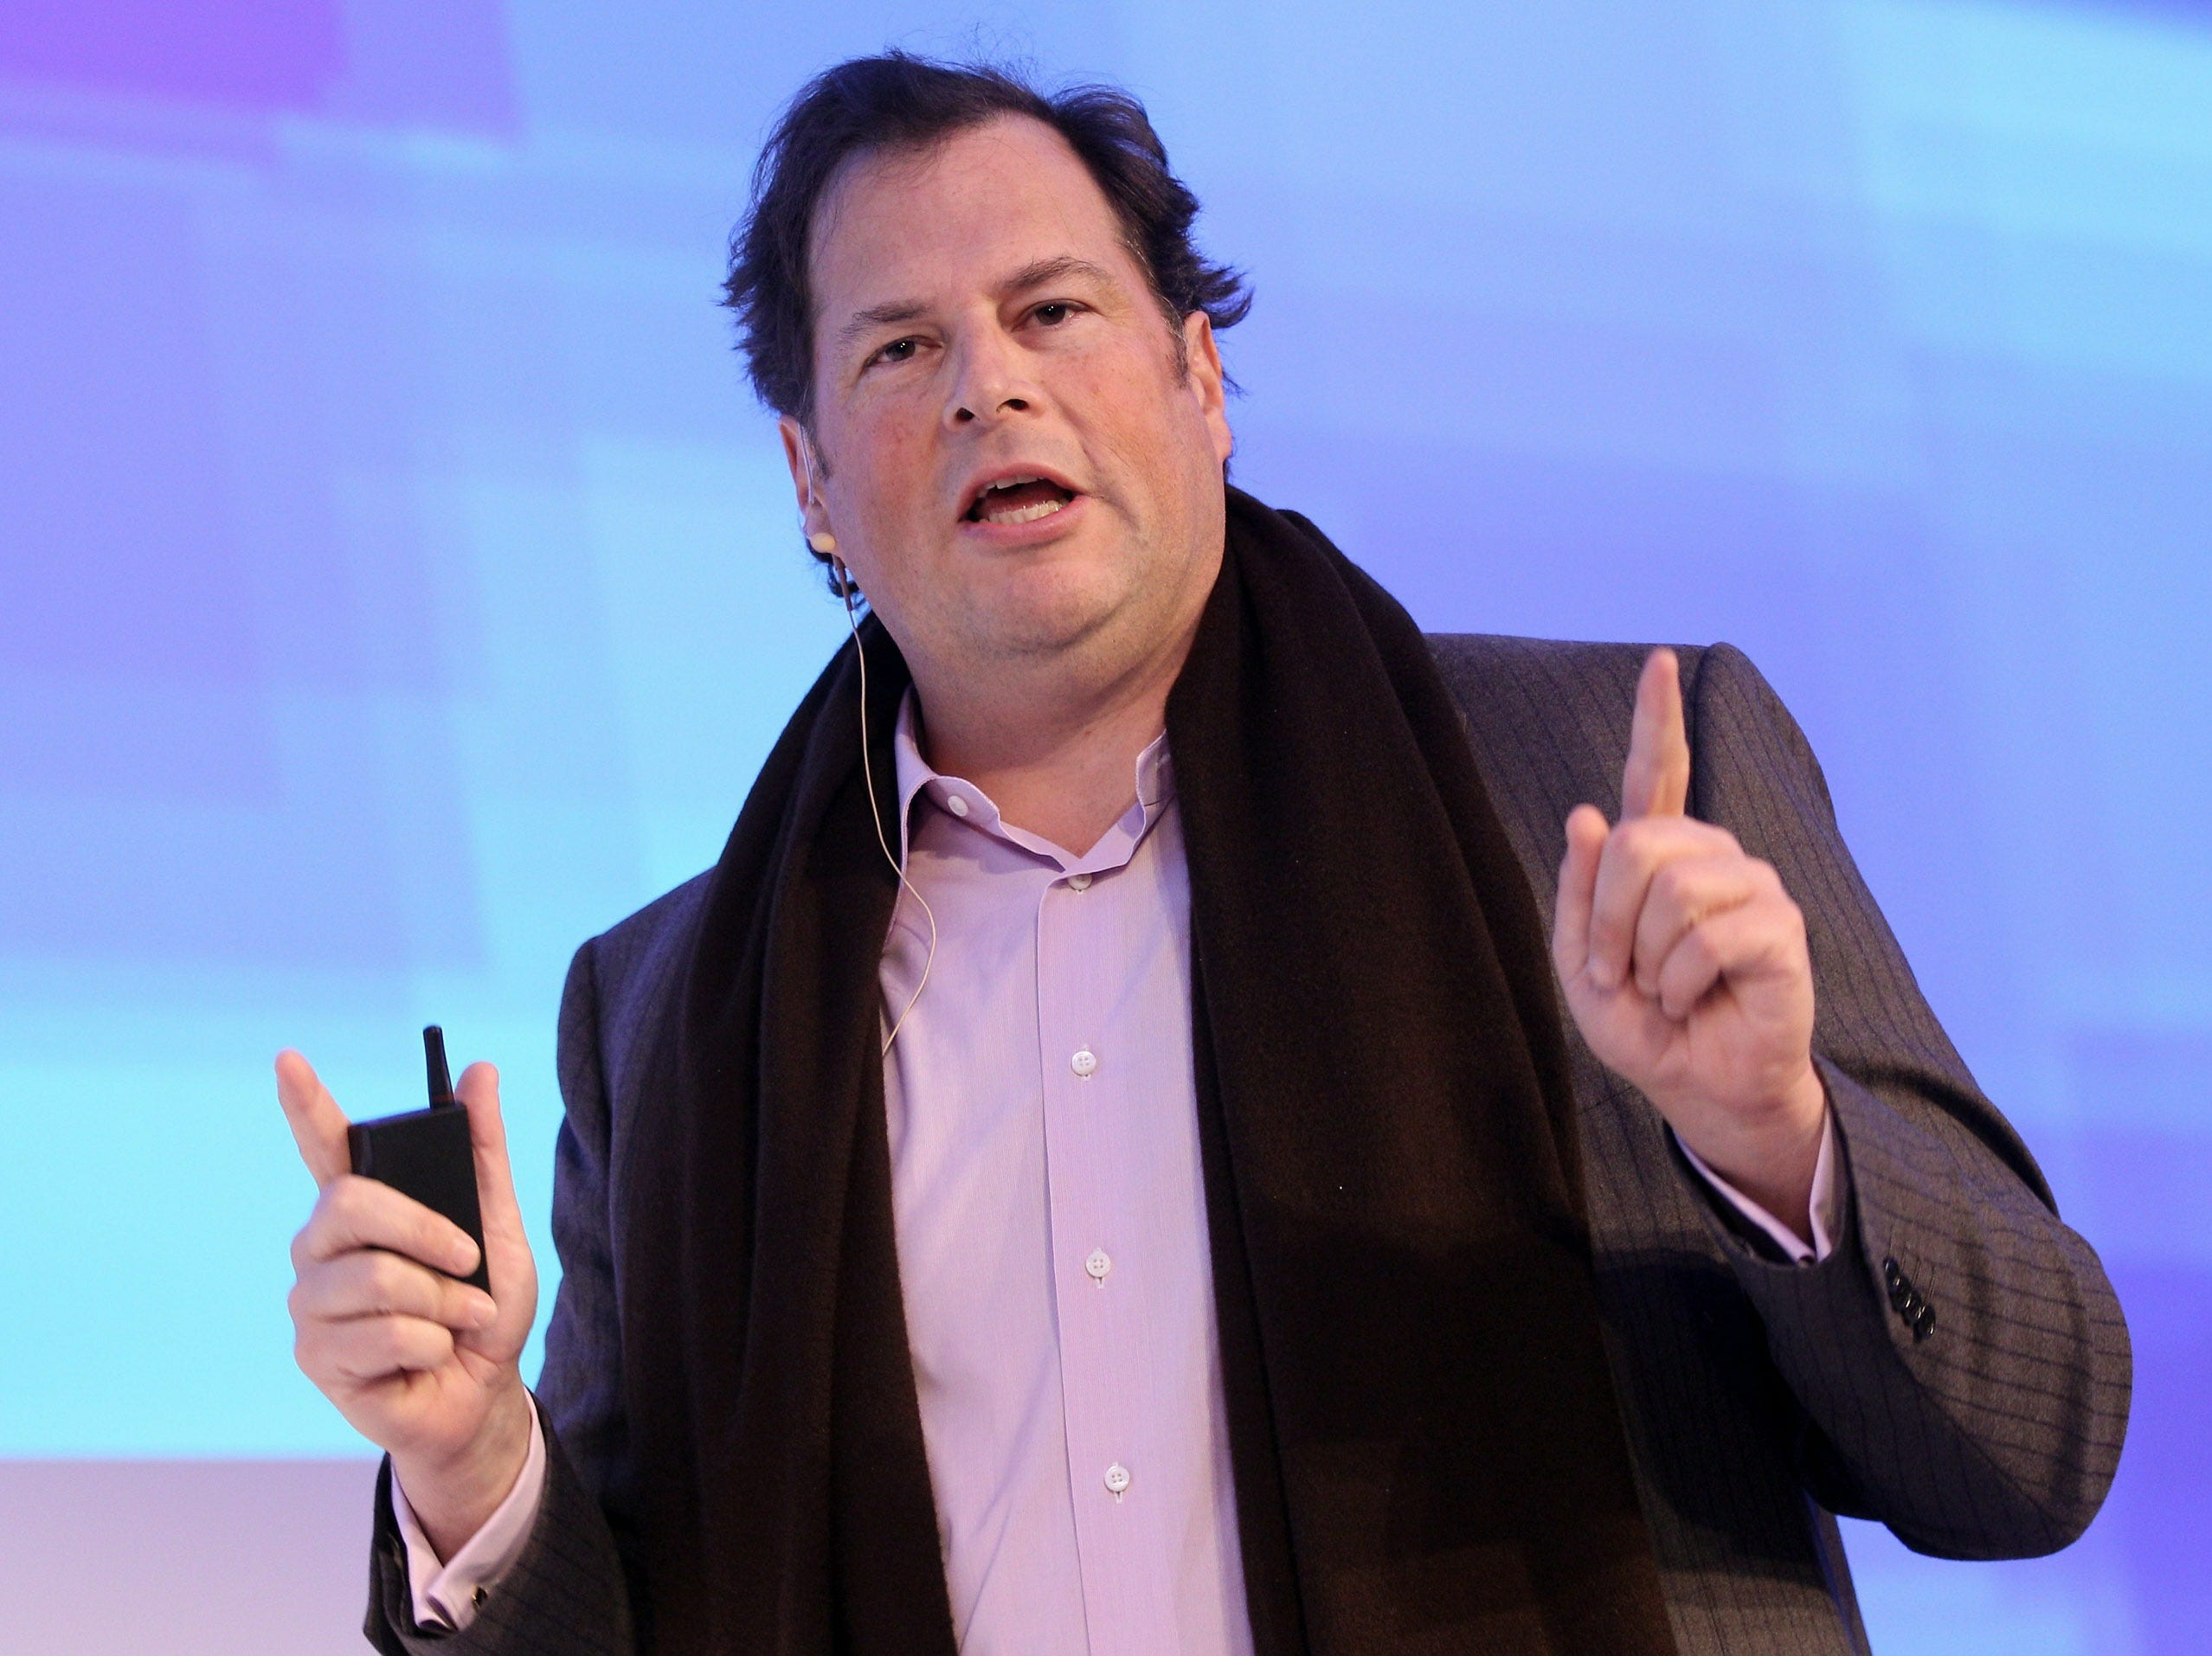 Marc Benioff, chairman and CEO of Salesforce.com, a cloud computing company, addresses the audience during the Digital Life Design (DLD) conference on January 24, 2011, in Munich.